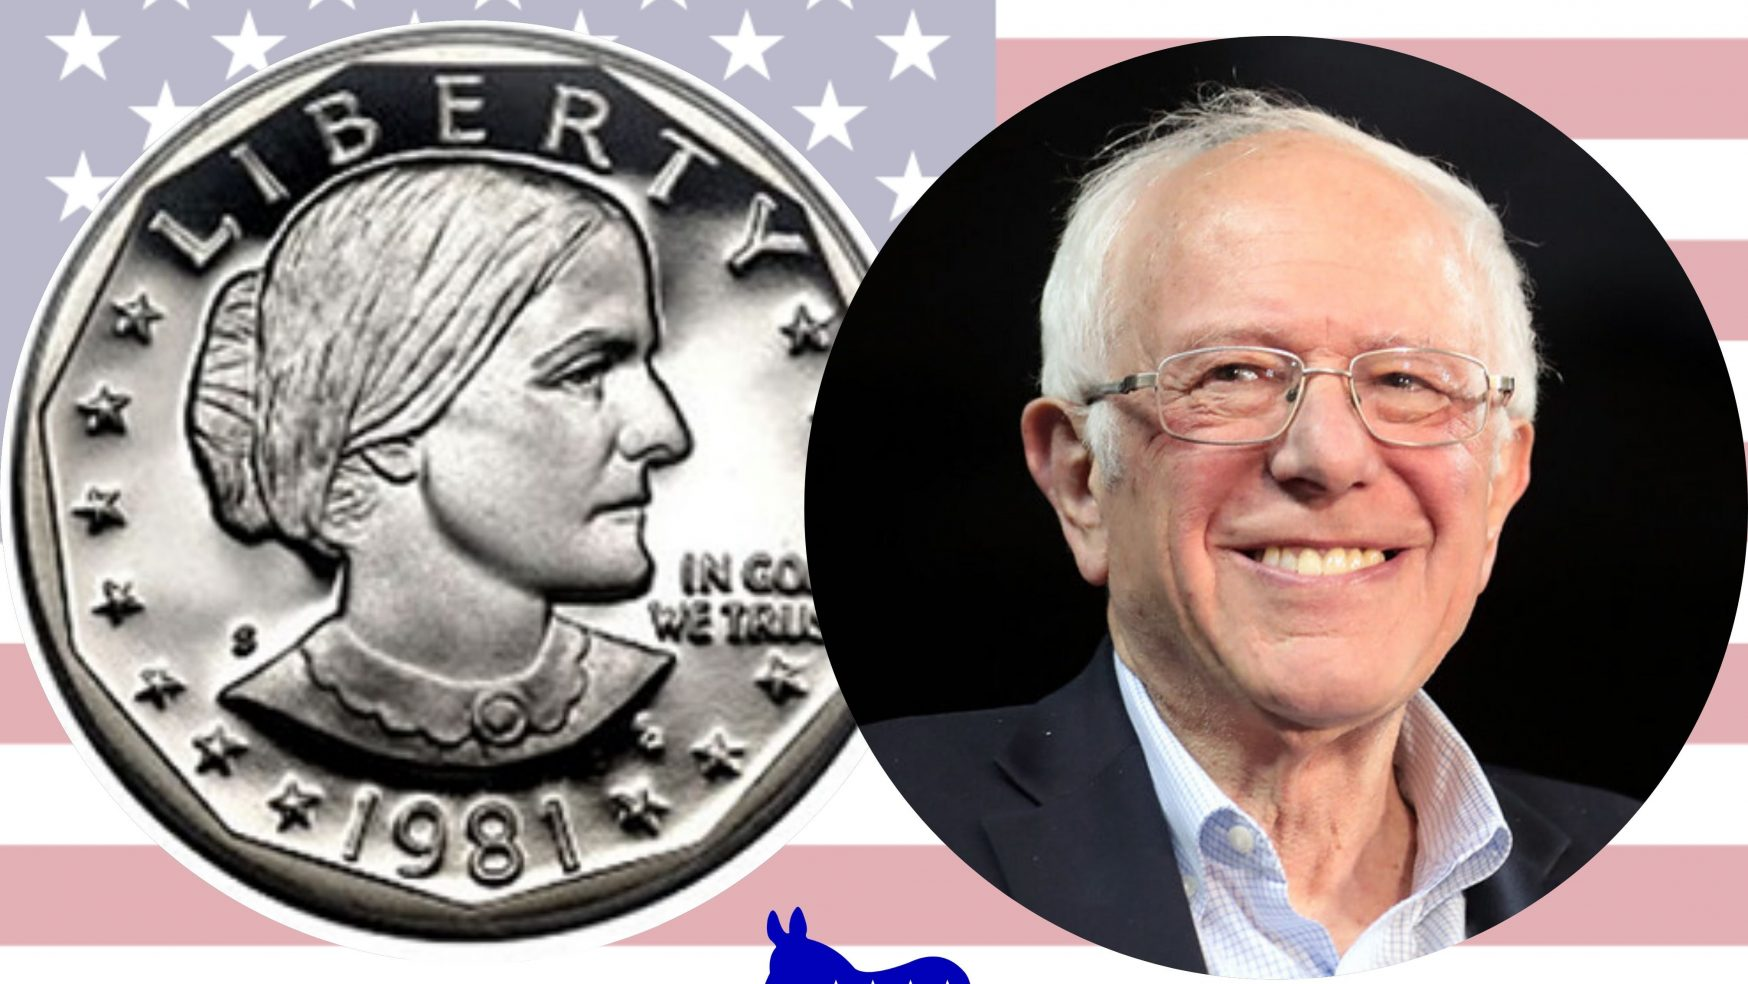 The two sides of the Democratic coin: Bernie Sanders